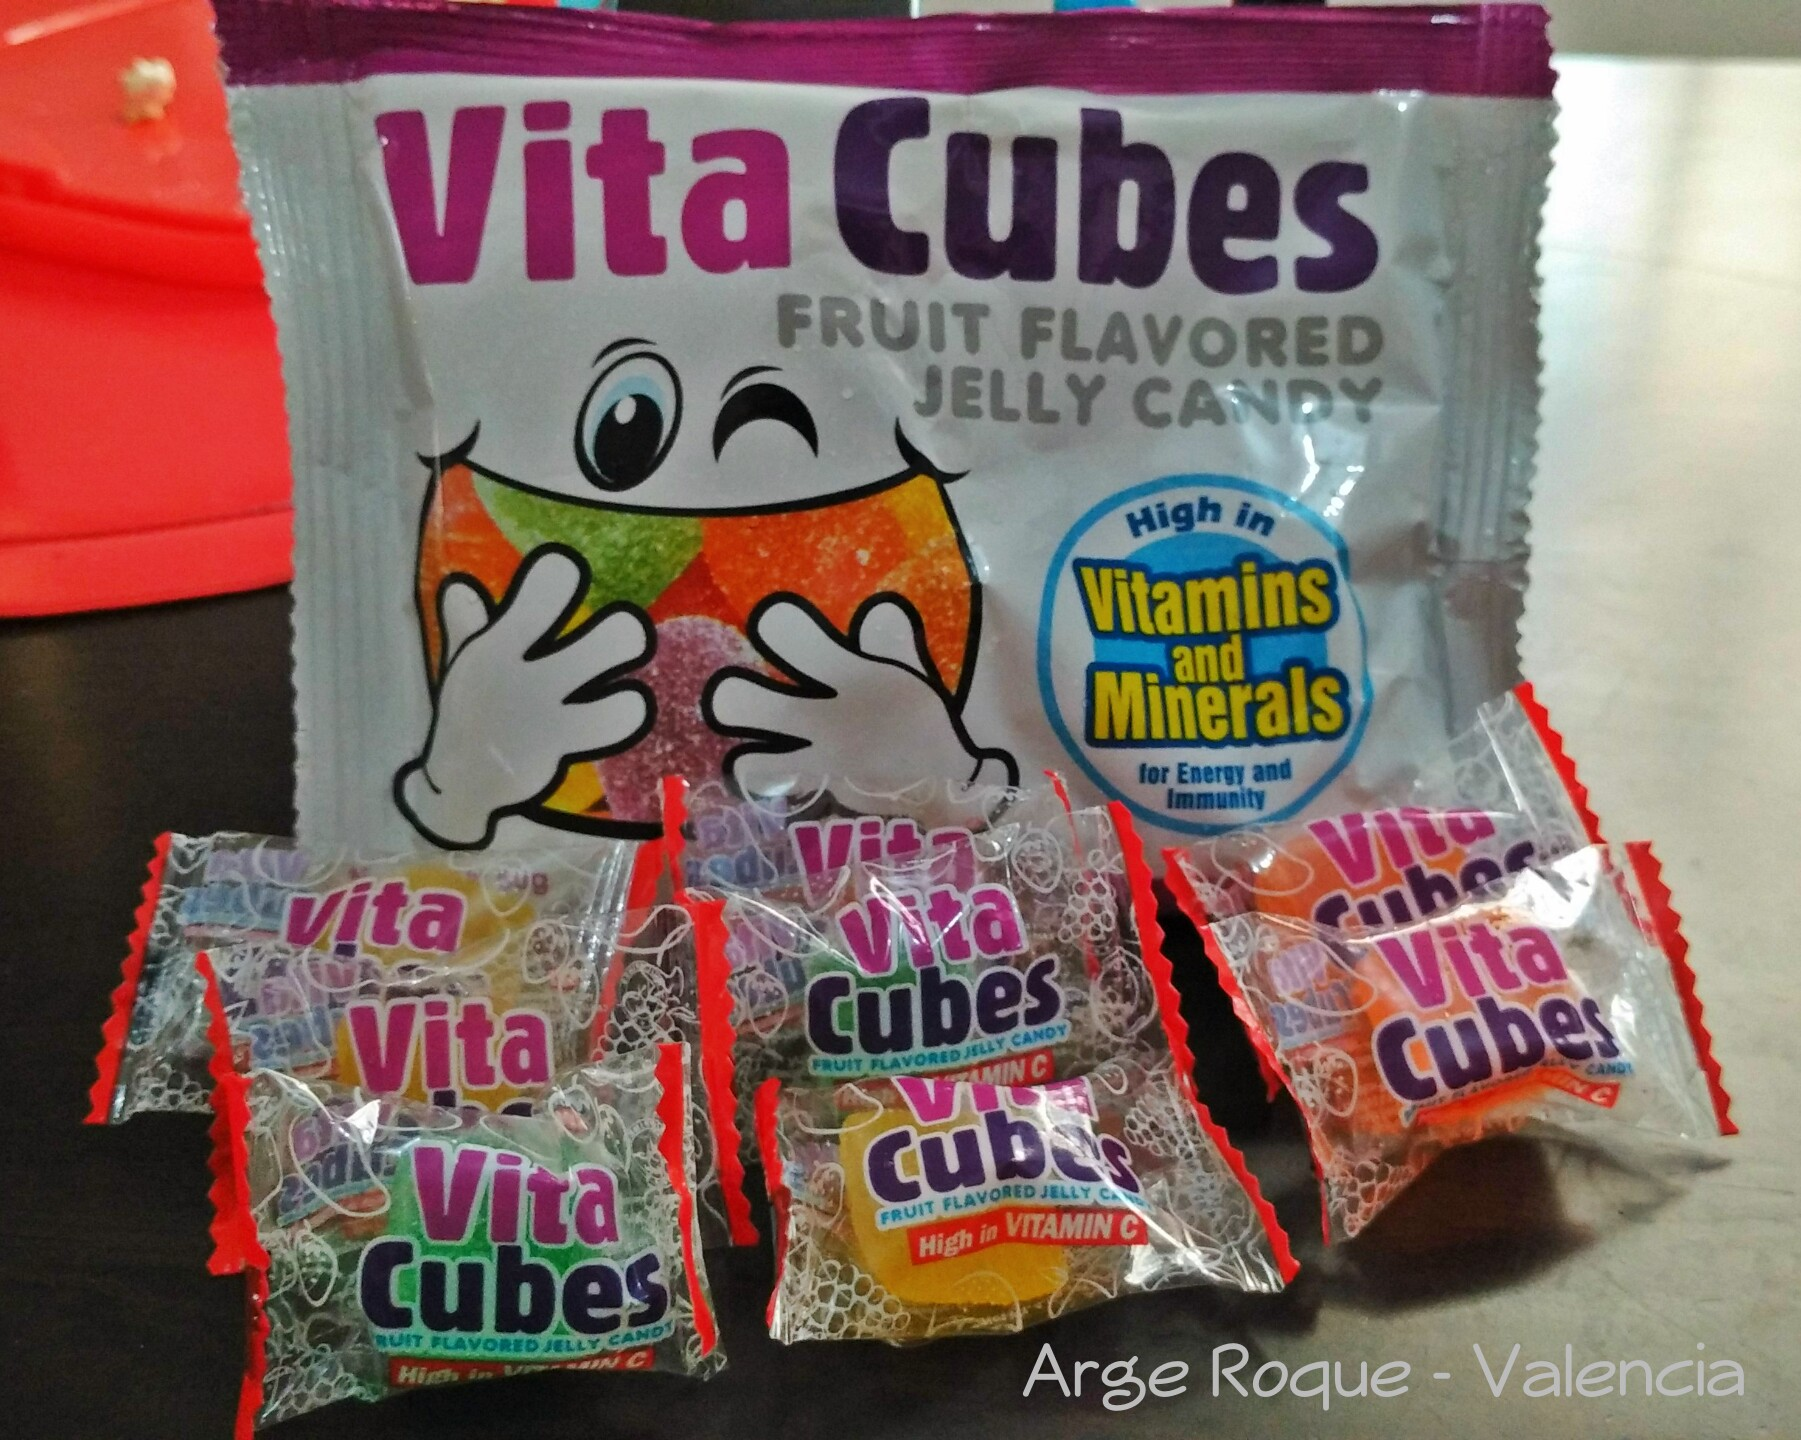 Vita Cubes Fruit Flavored Jelly Candies